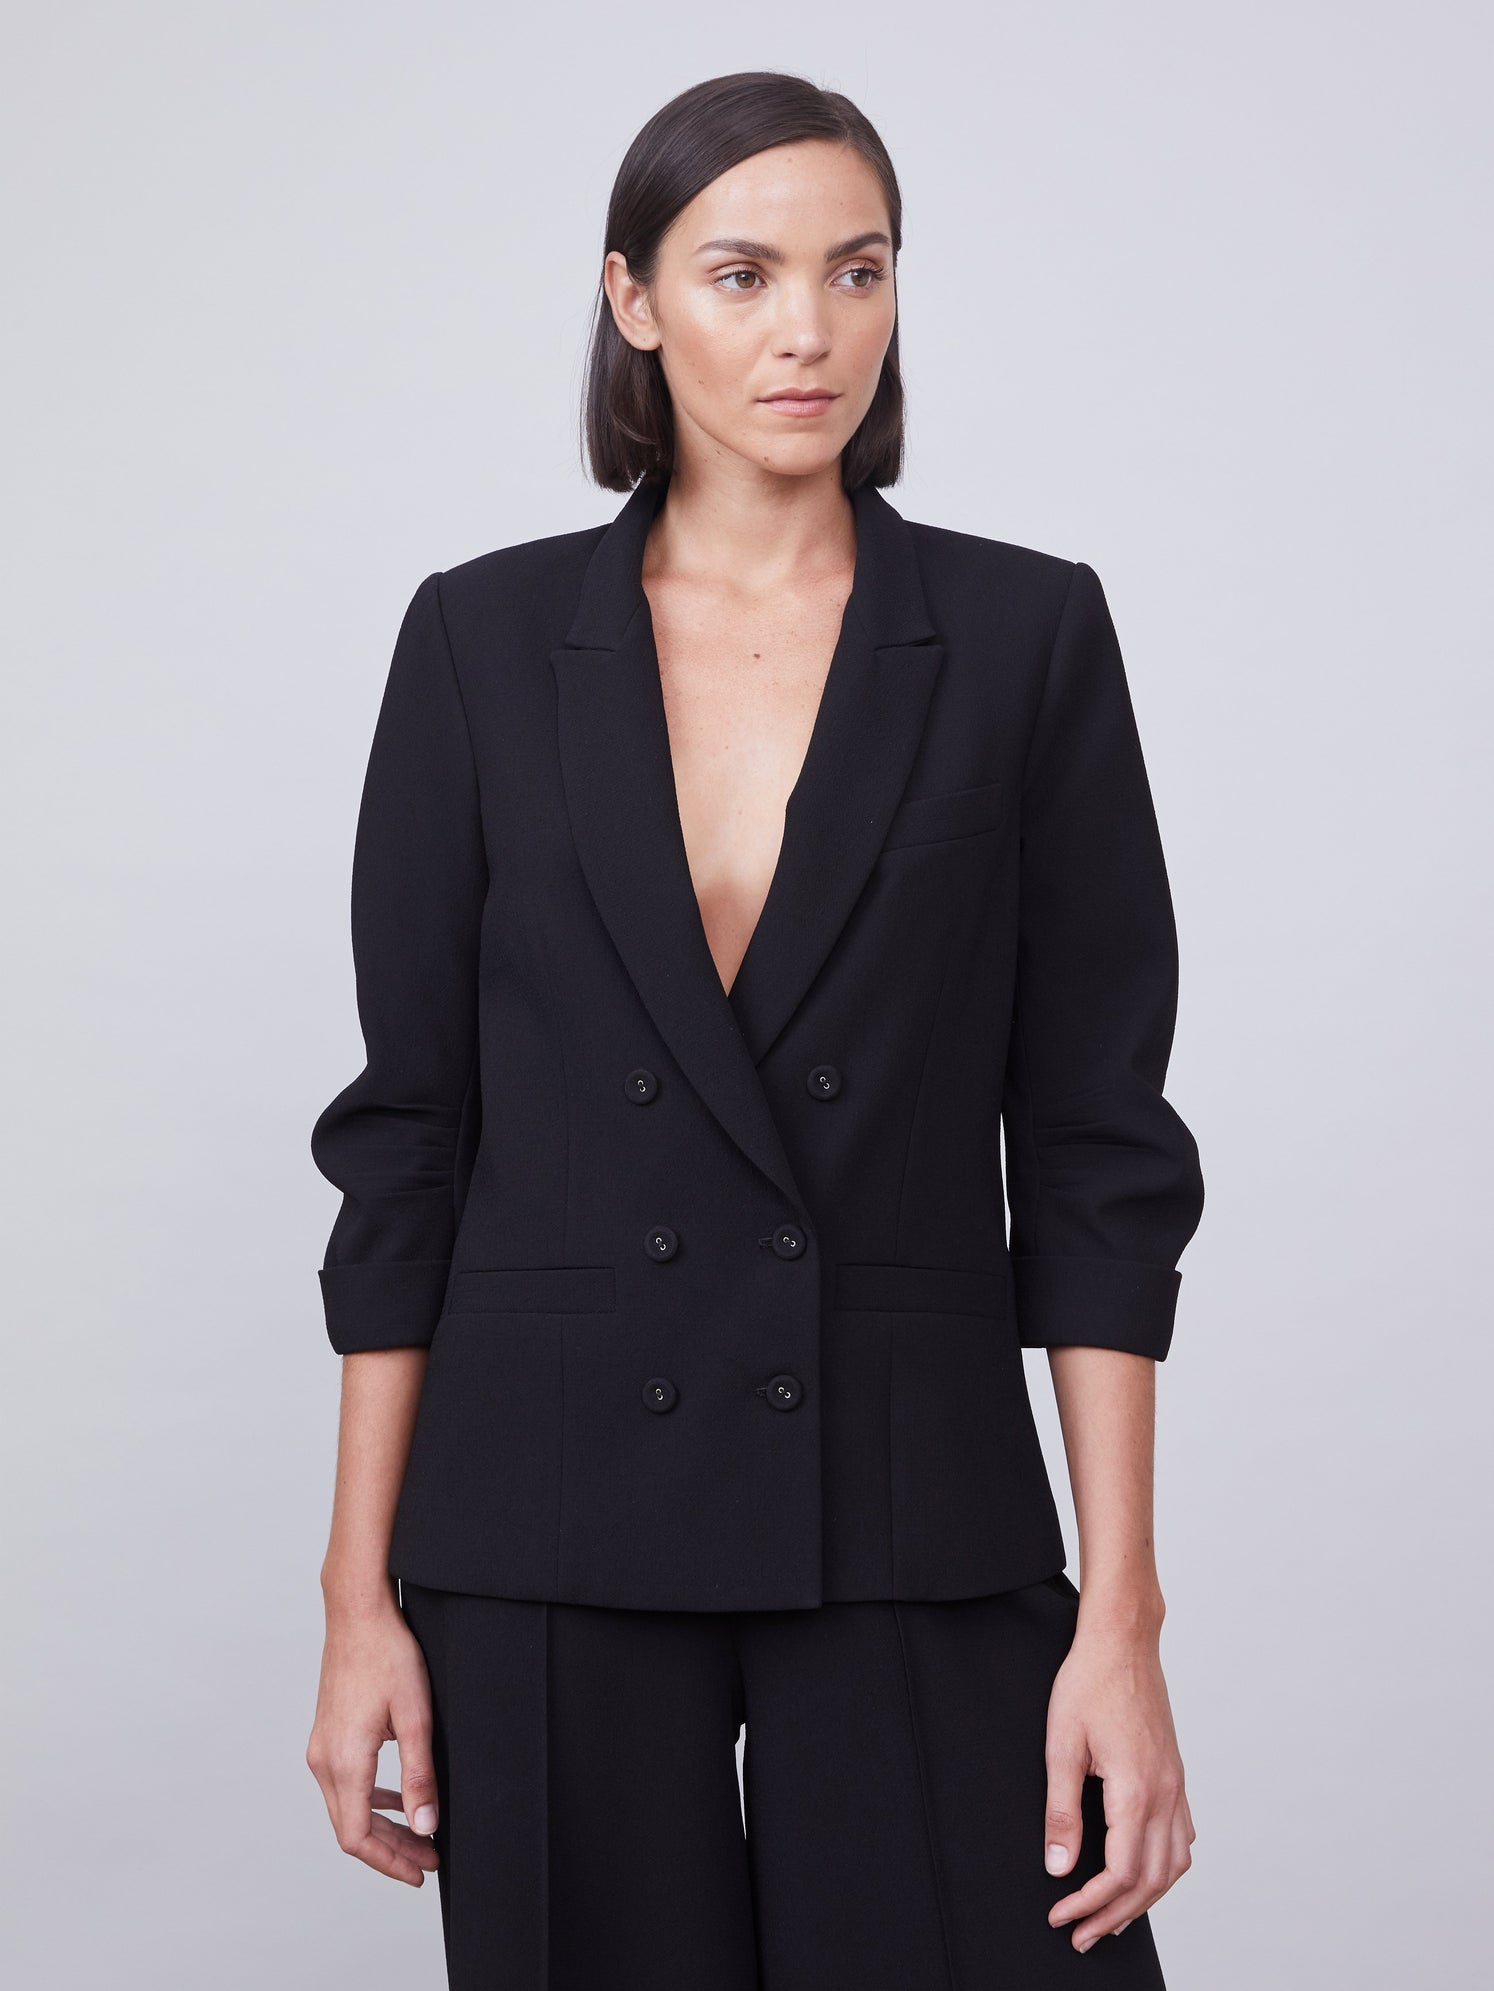 Double breasted blazer featuring ruched 3/4 sleeves